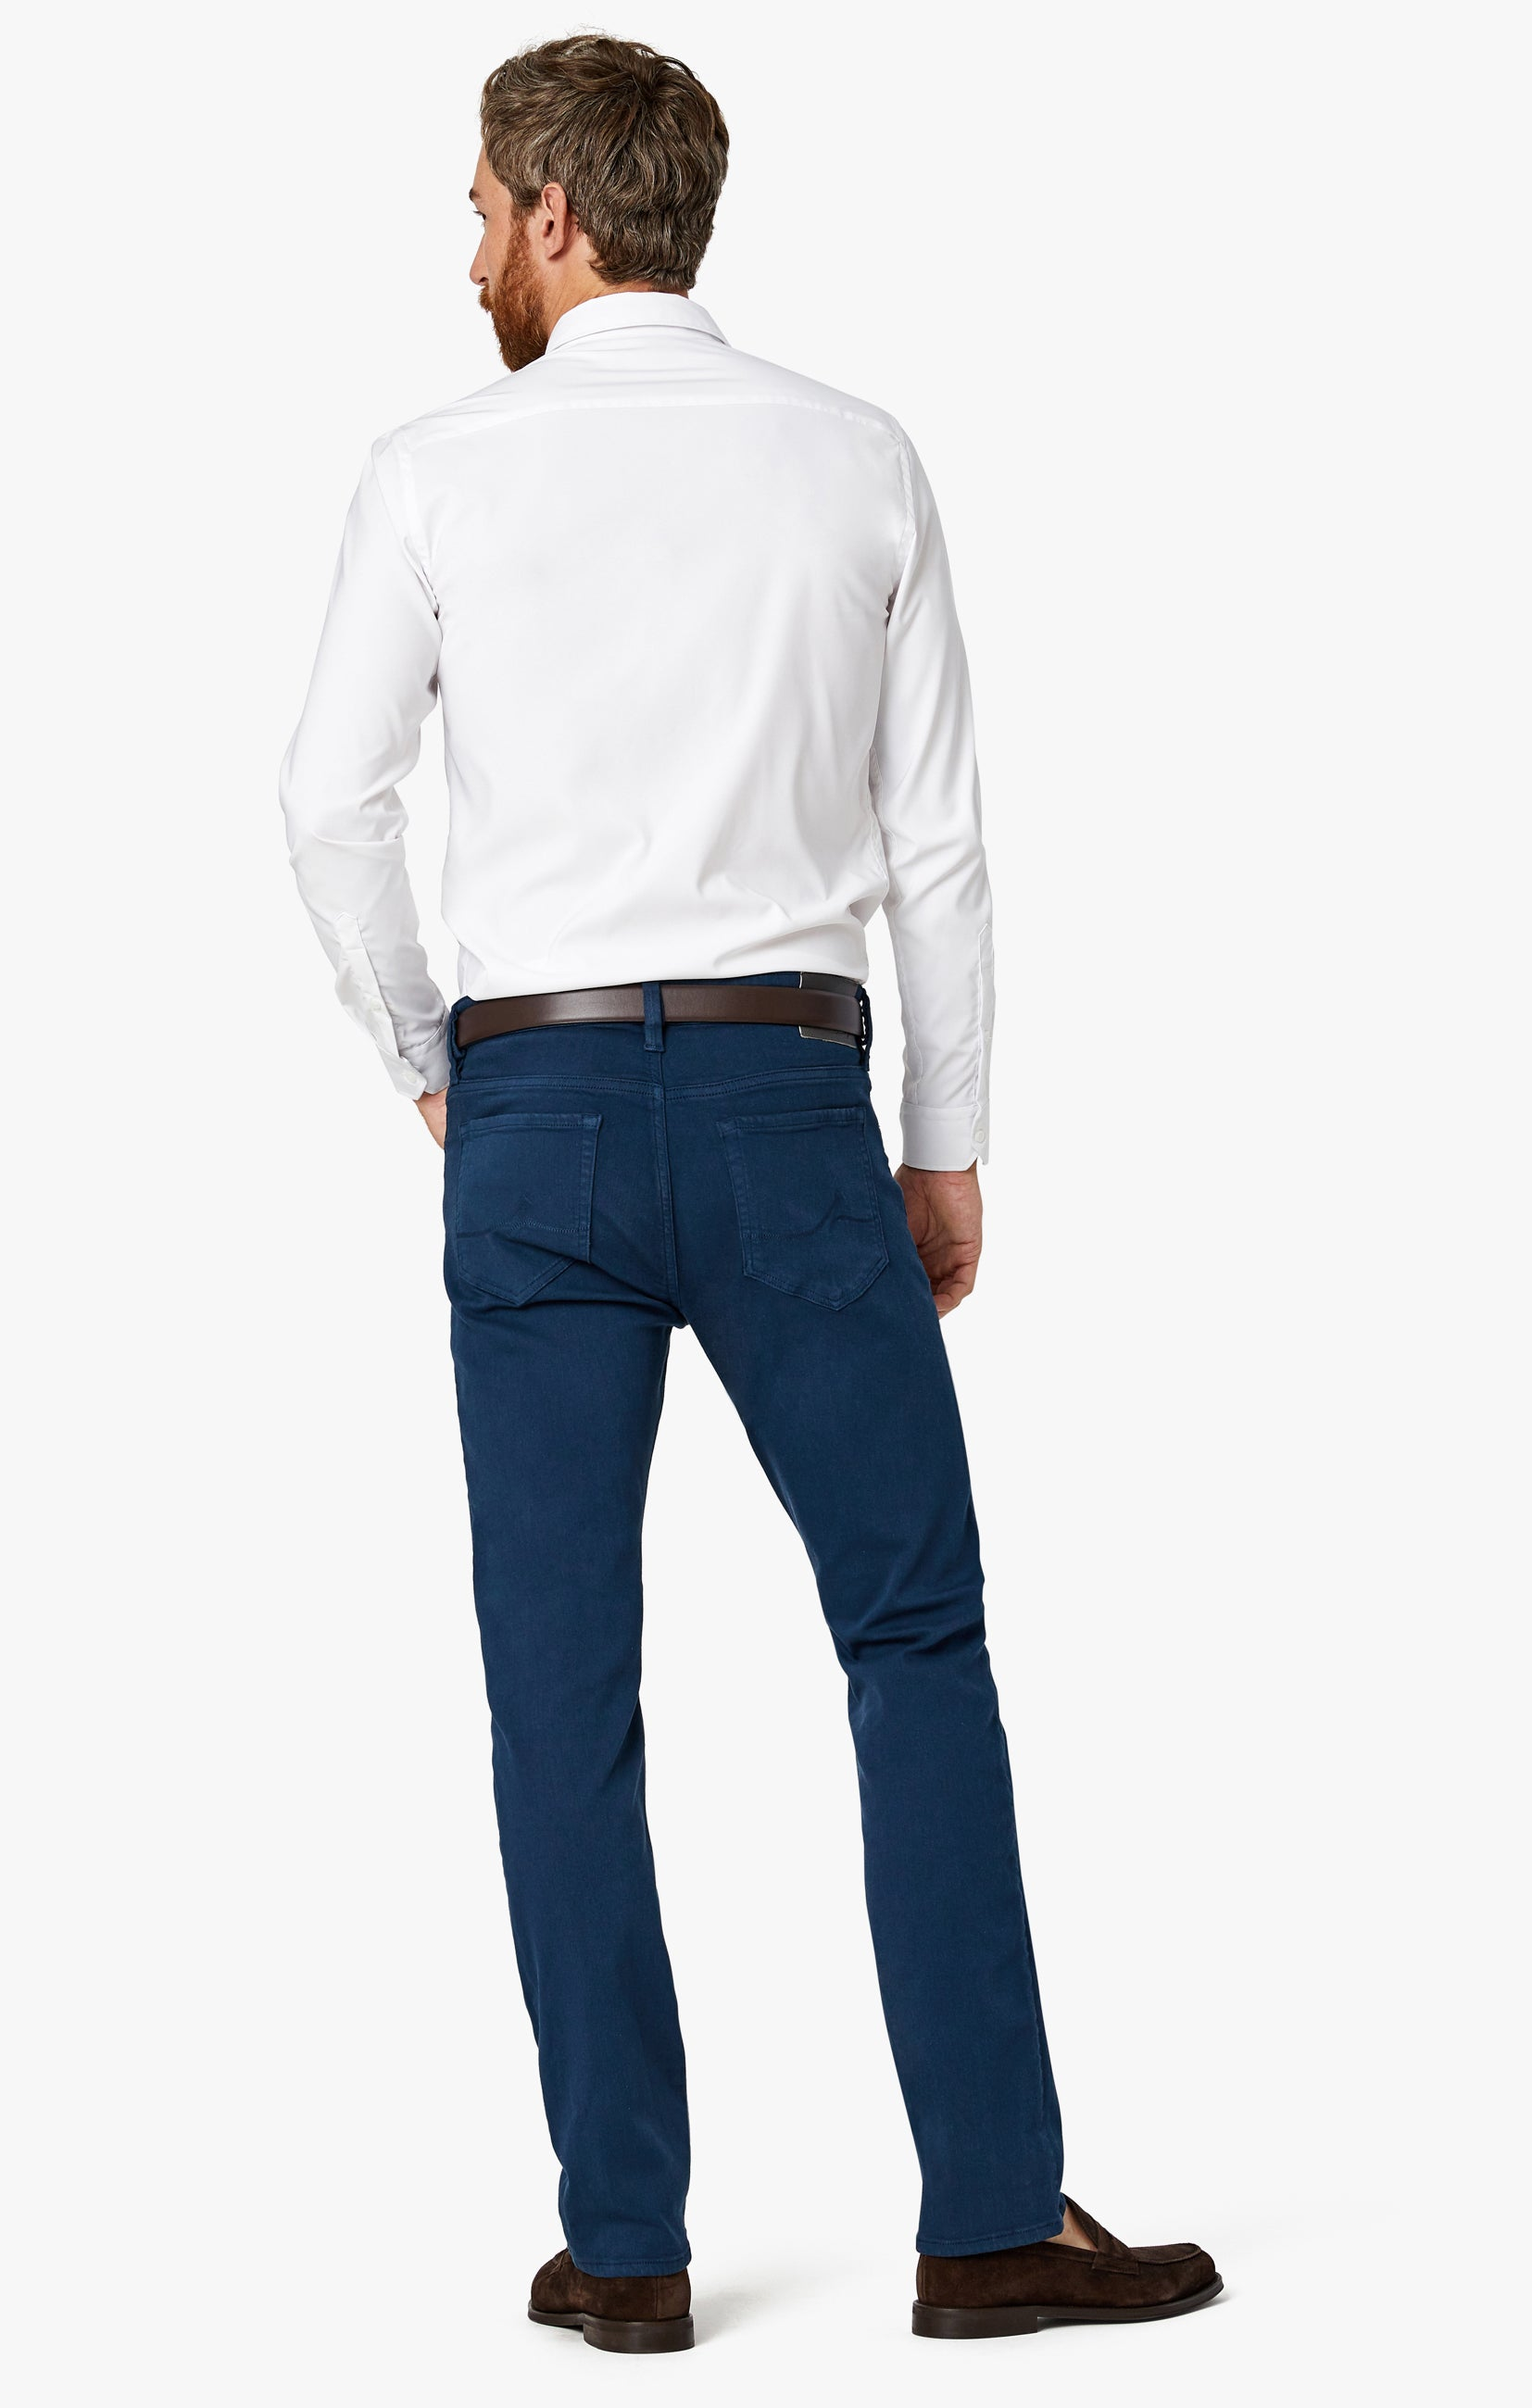 Charisma Relaxed Straight Pants in Petrol Comfort Image 9